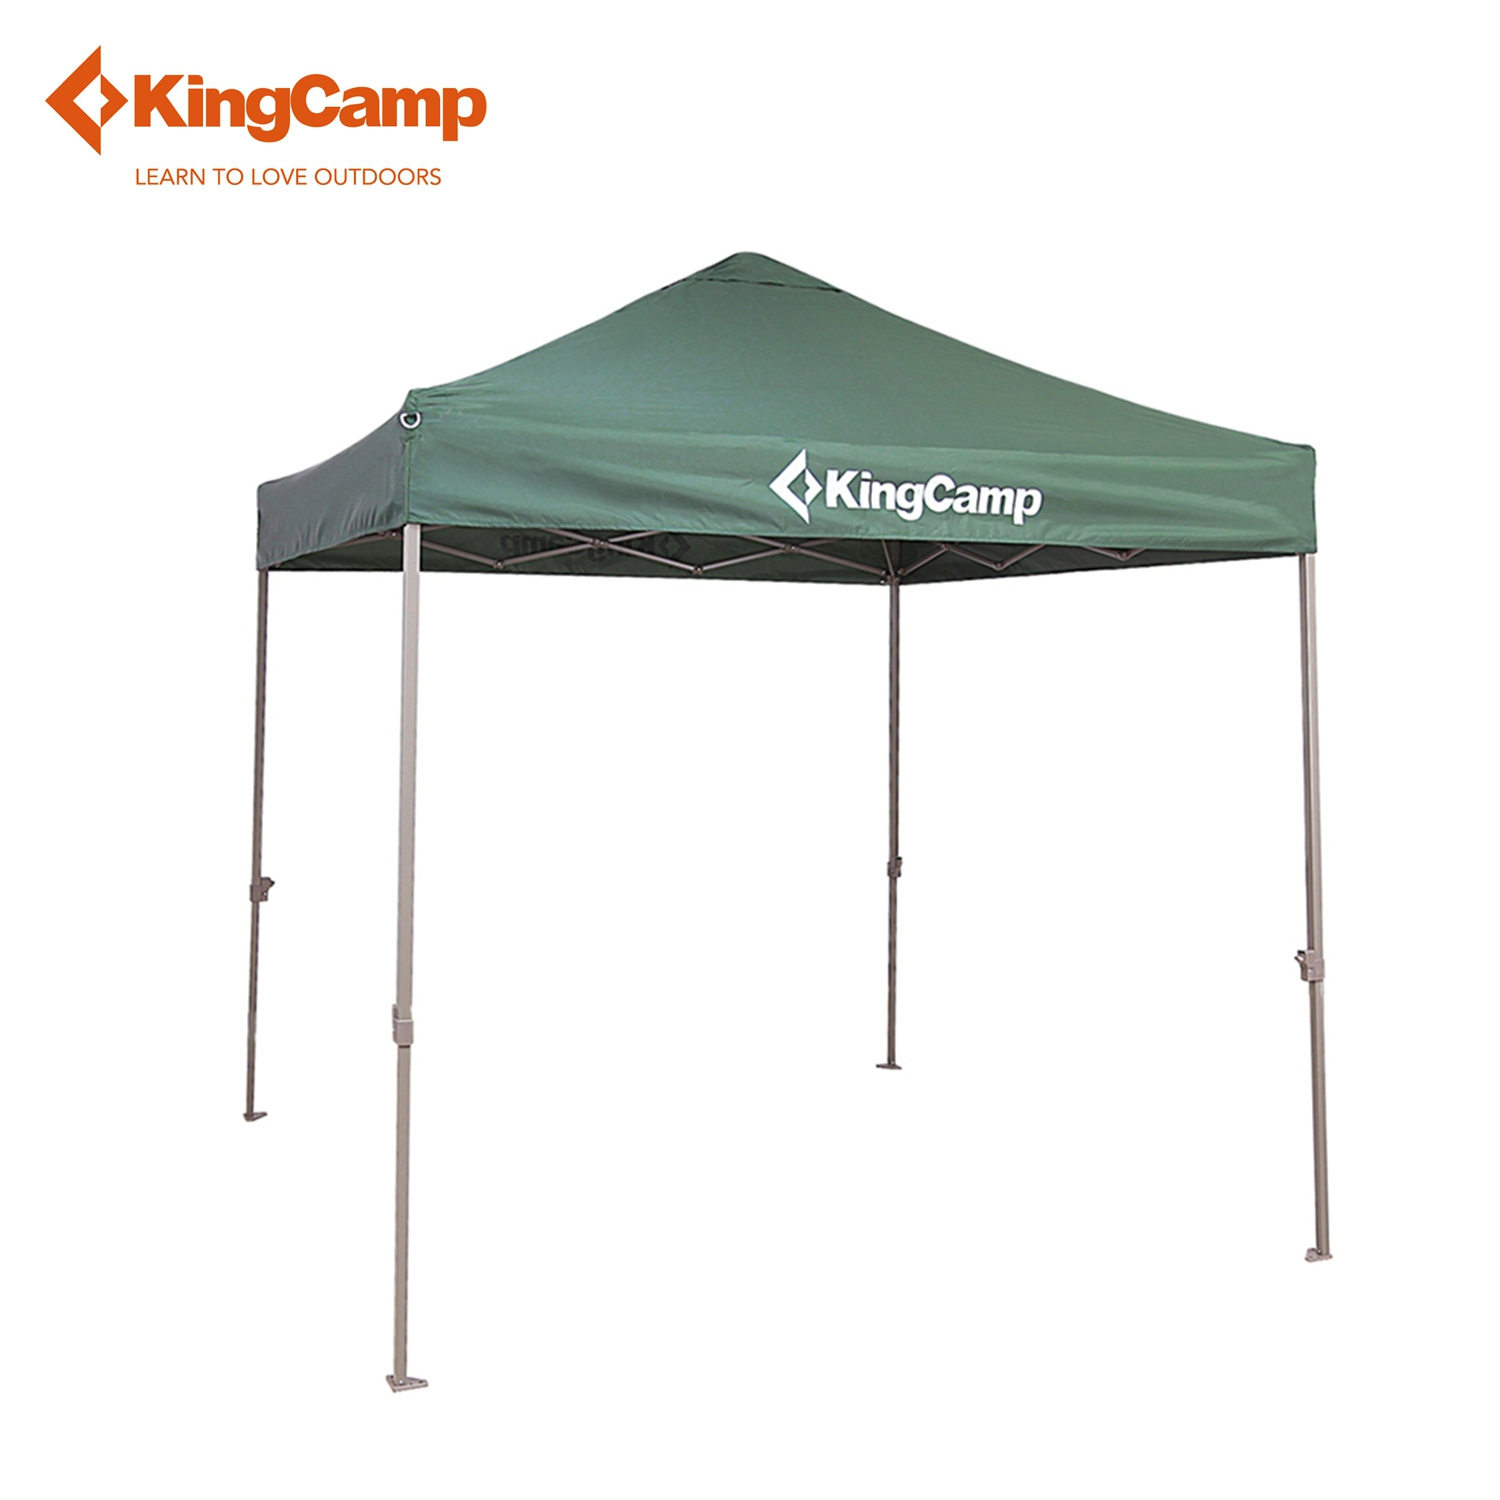 KingC& Portable Easy up Sun Shelter Top Grade Outdoor Canopy Tent for Patio Party Picnic Commercial Fair Shelter Car Shelter-in Sun Shelter from Sports ...  sc 1 st  AliExpress.com & KingCamp Portable Easy up Sun Shelter Top Grade Outdoor Canopy ...